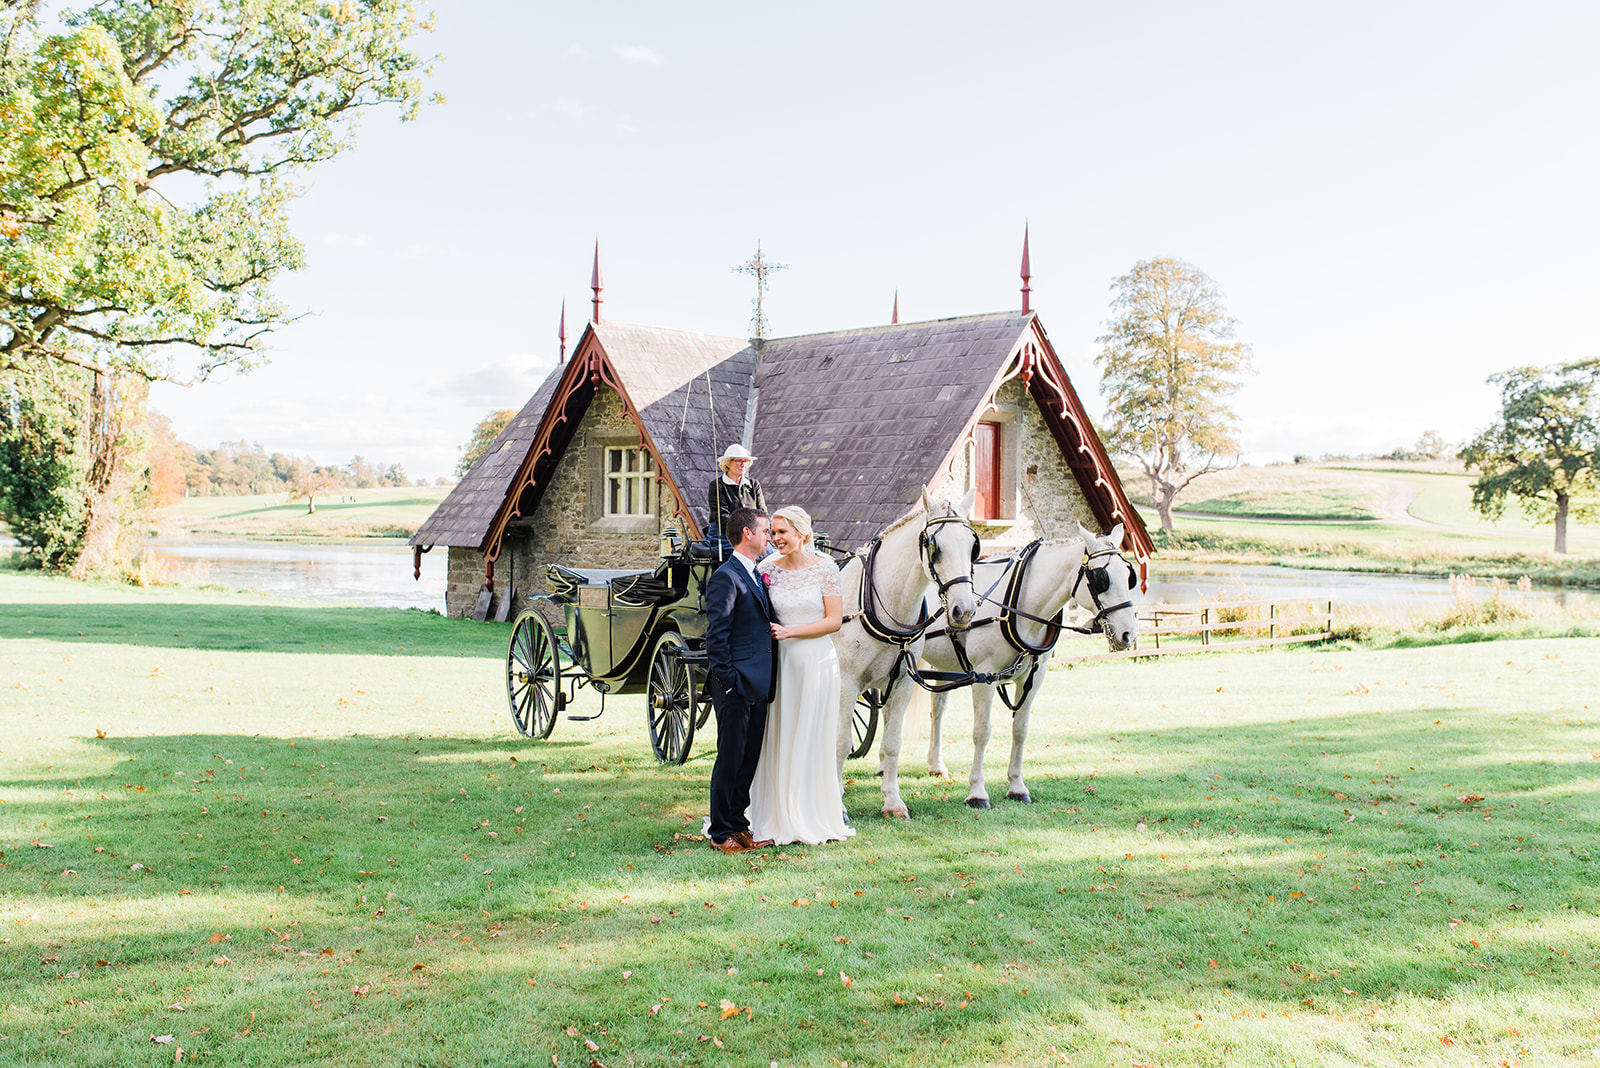 Dream carton house wedding